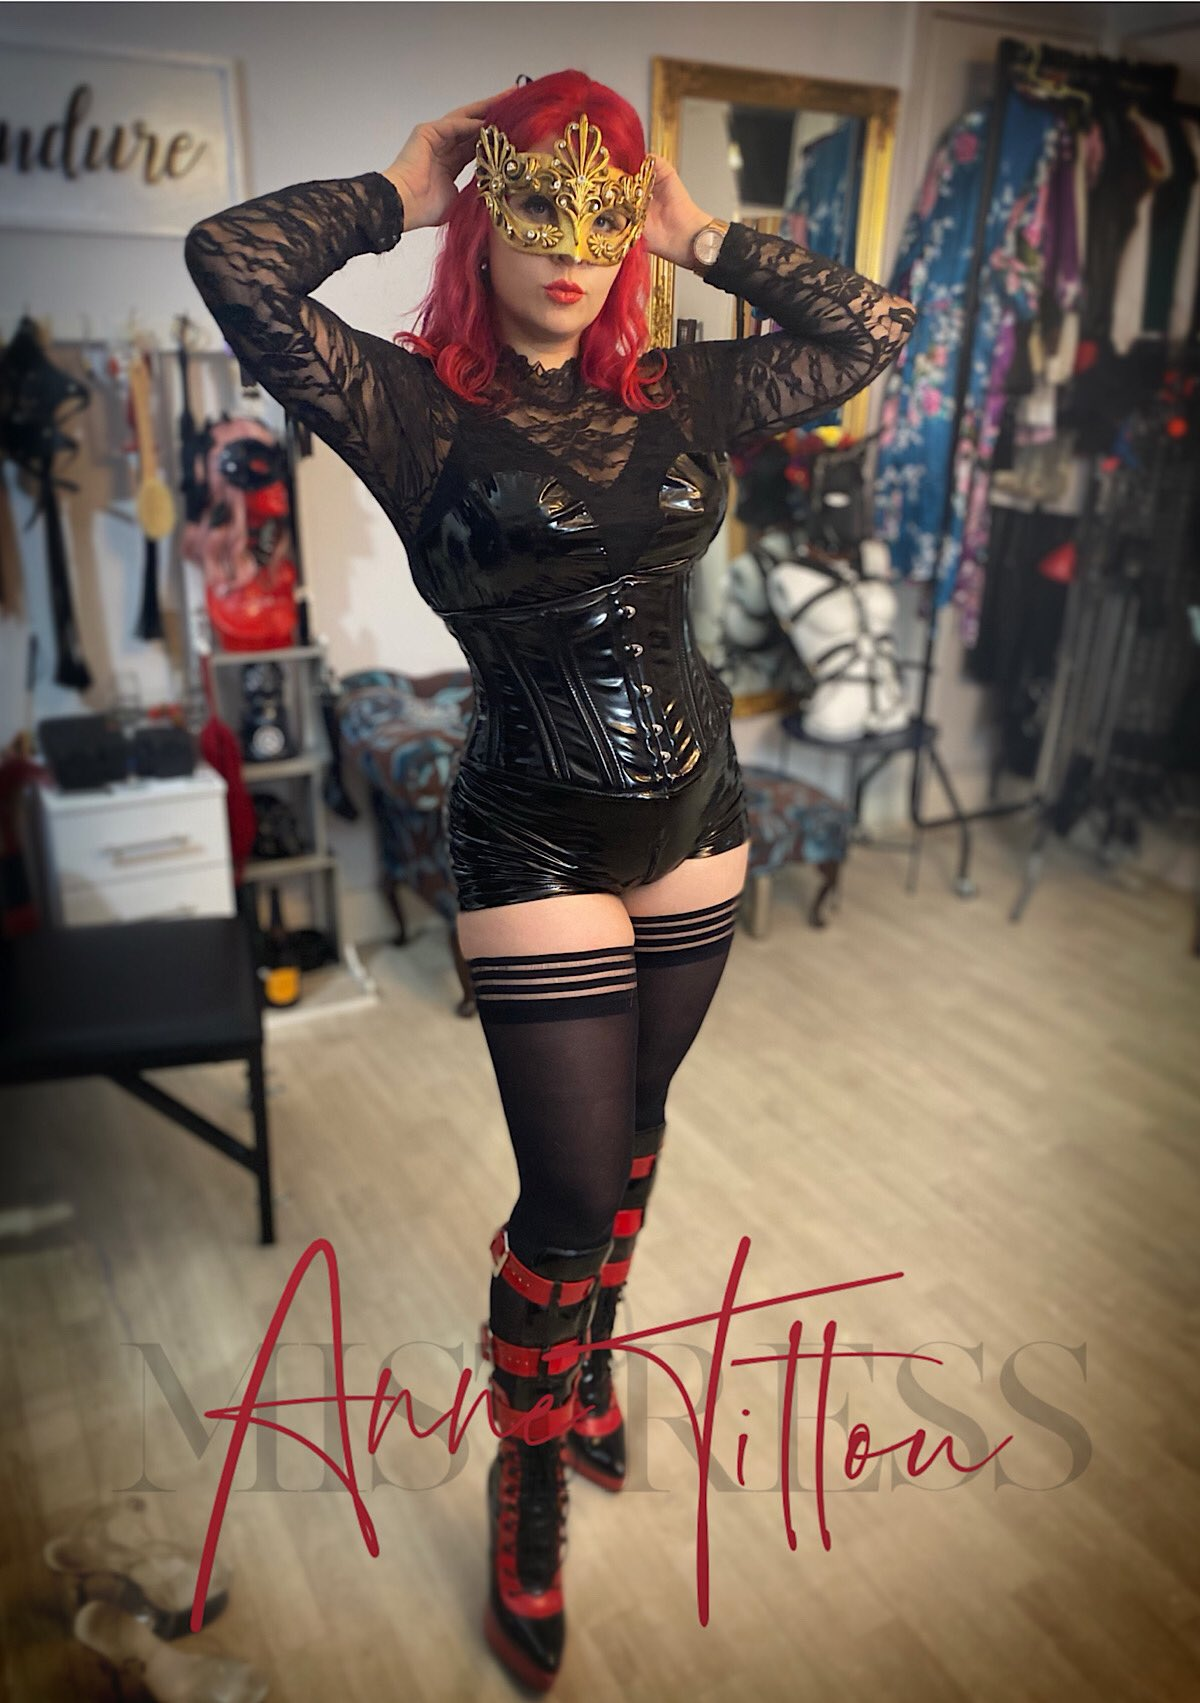 London Mistresses Miss Anne Tittou